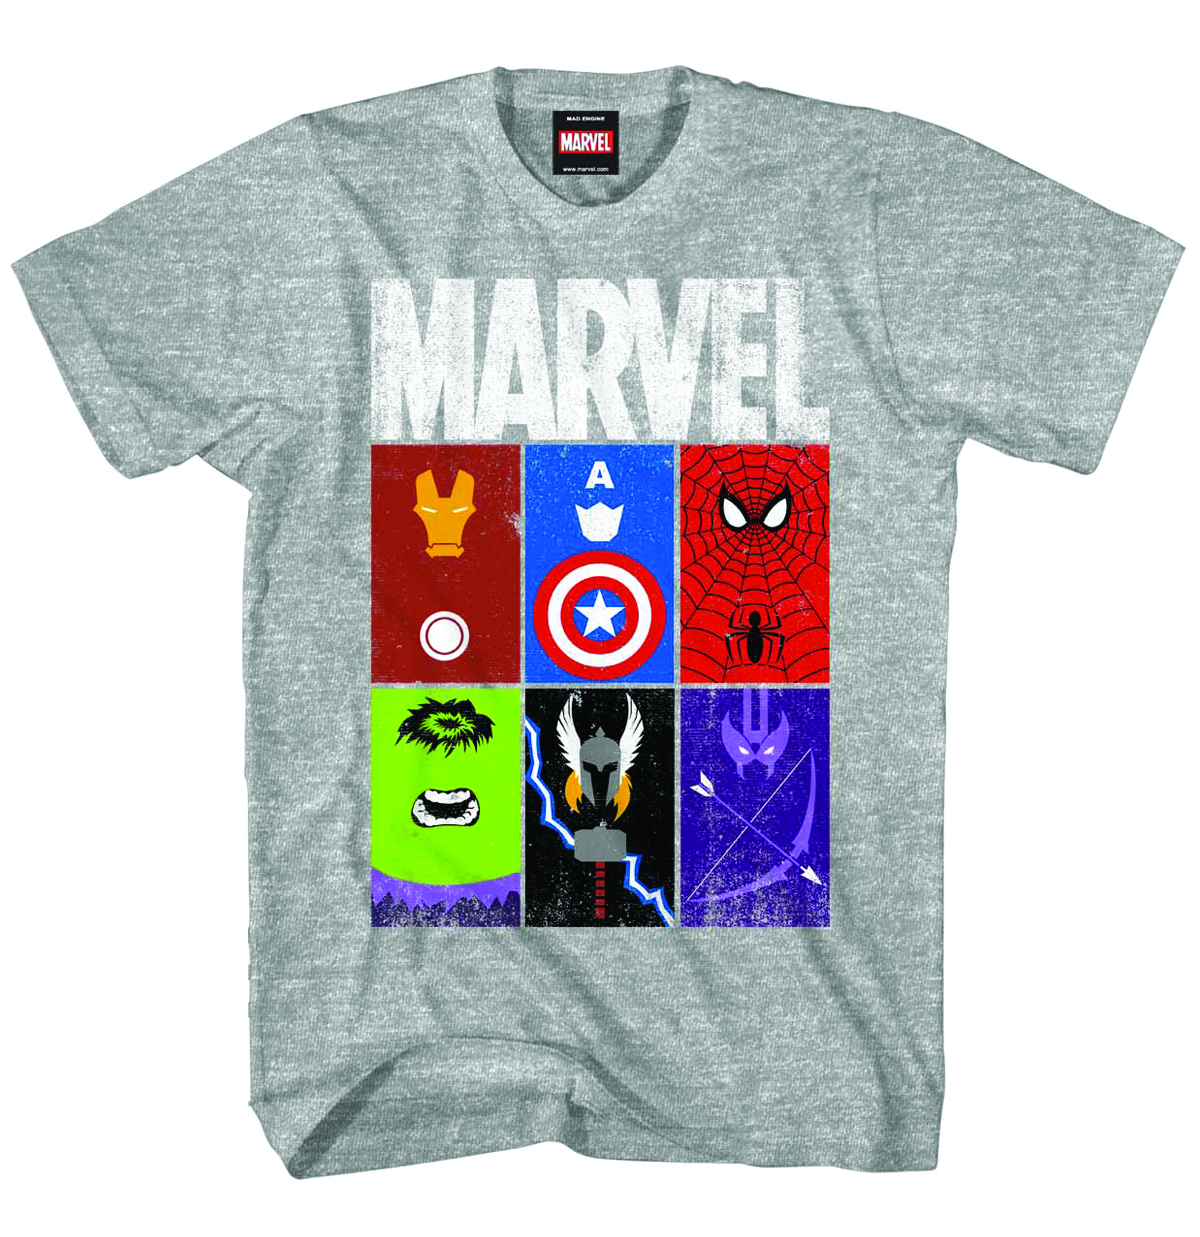 MARVEL HEROES MARVELBLOCKS HEATHER T/S XXL